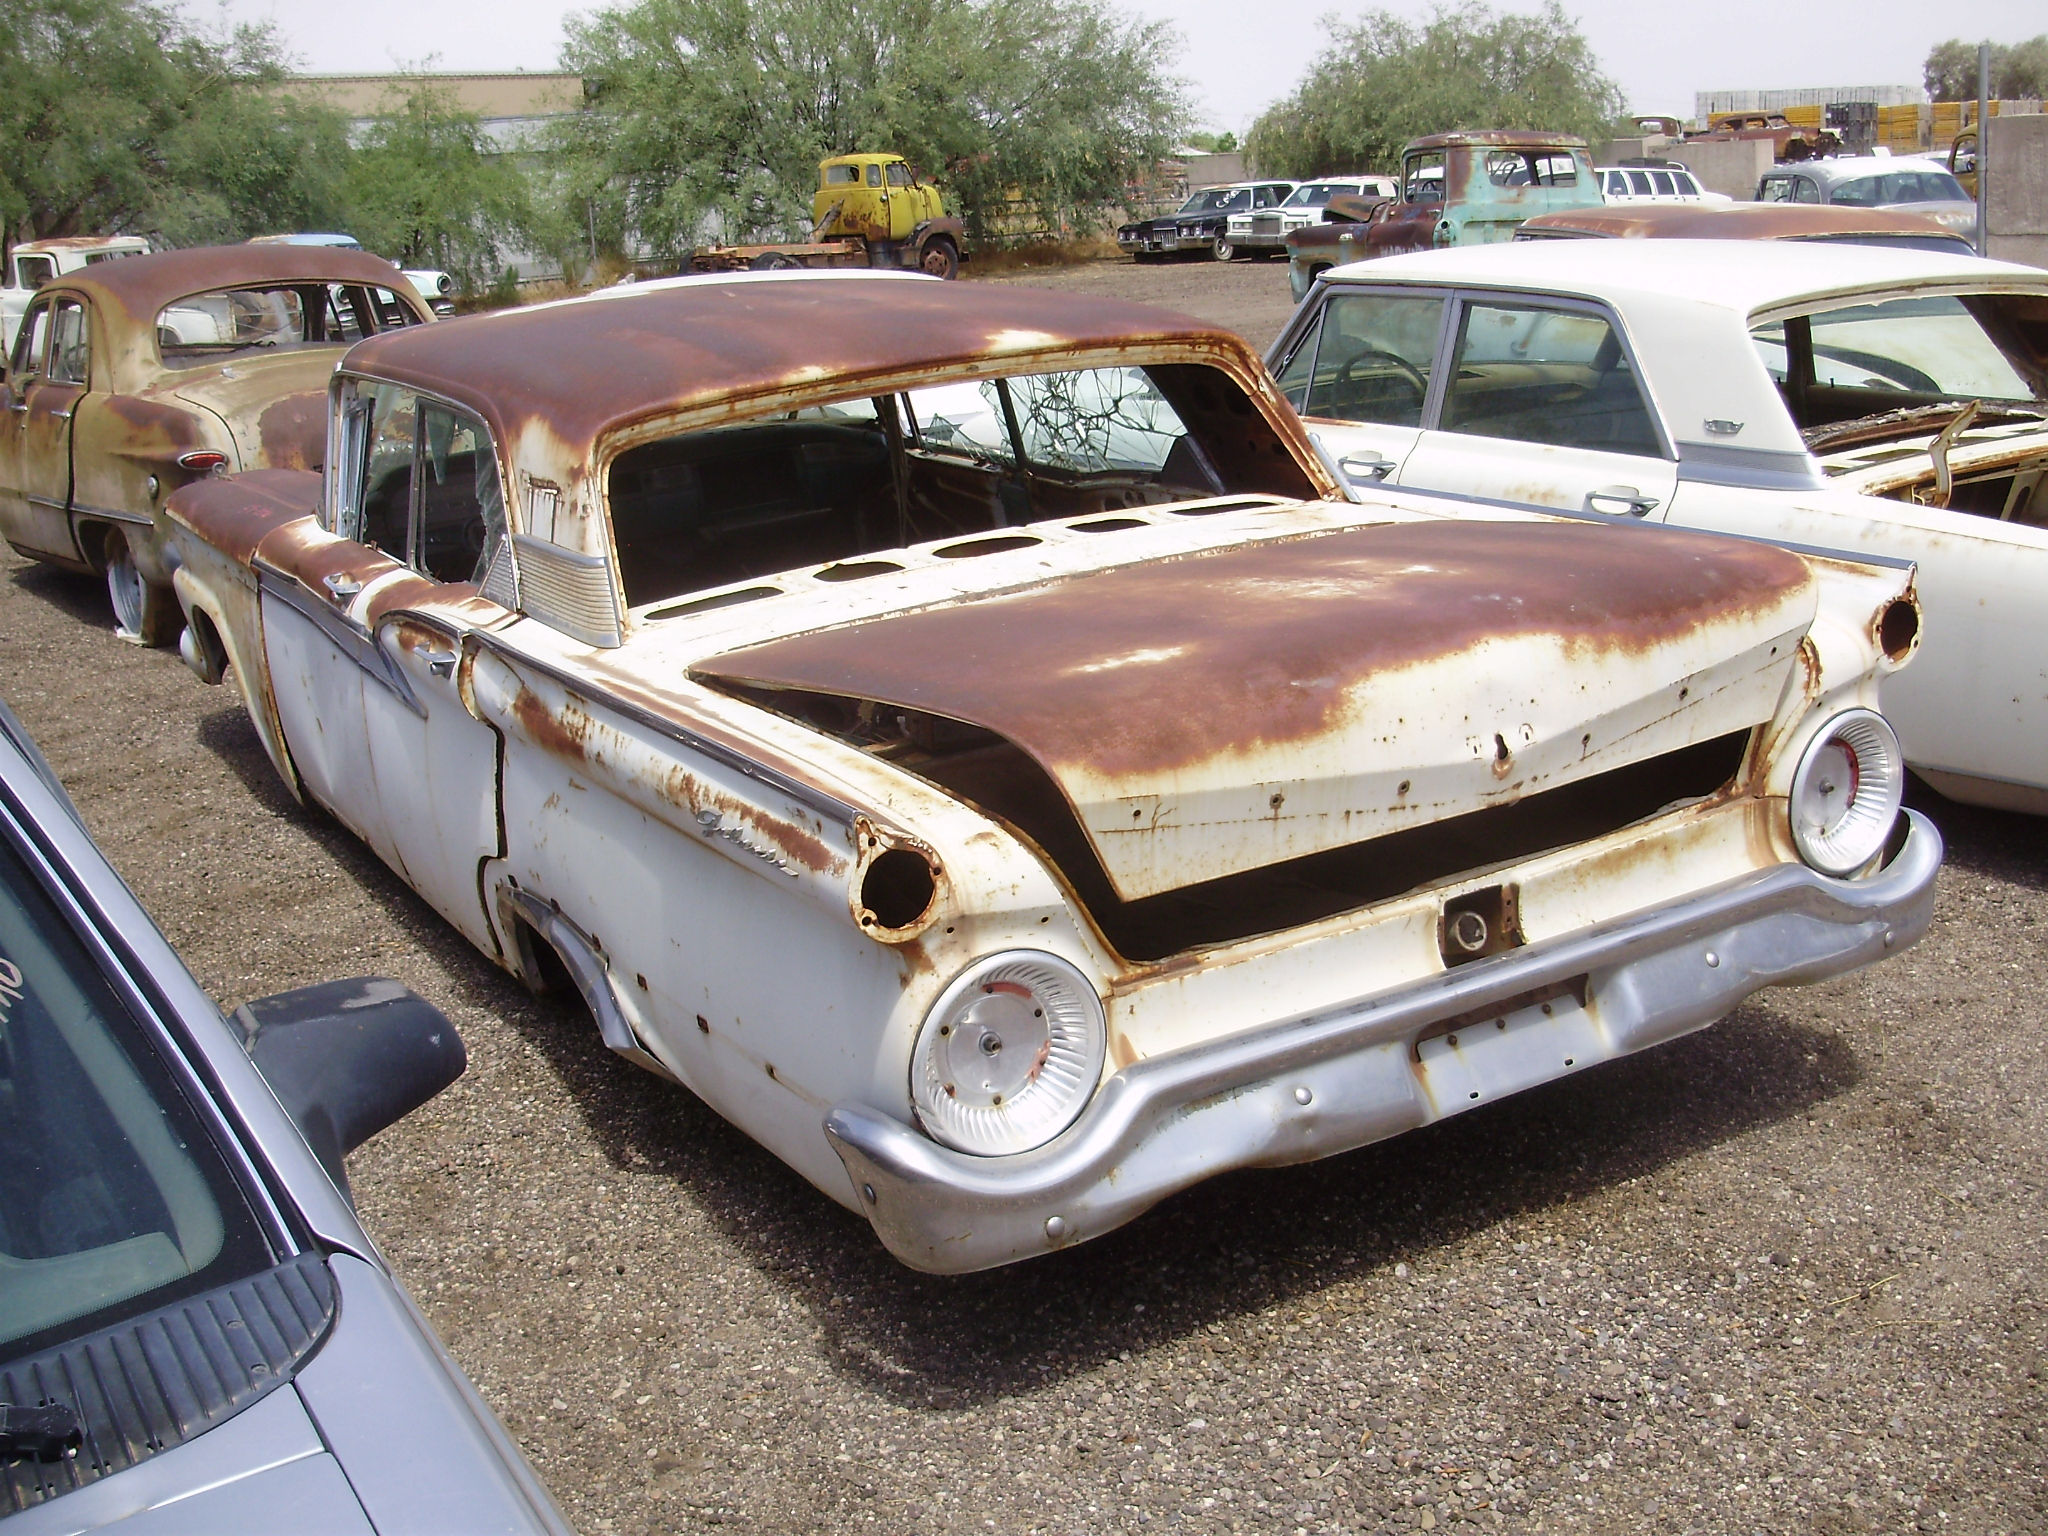 1959 Ford Galaxie (#59FO7514C) | Desert Valley Auto Parts - photo#35